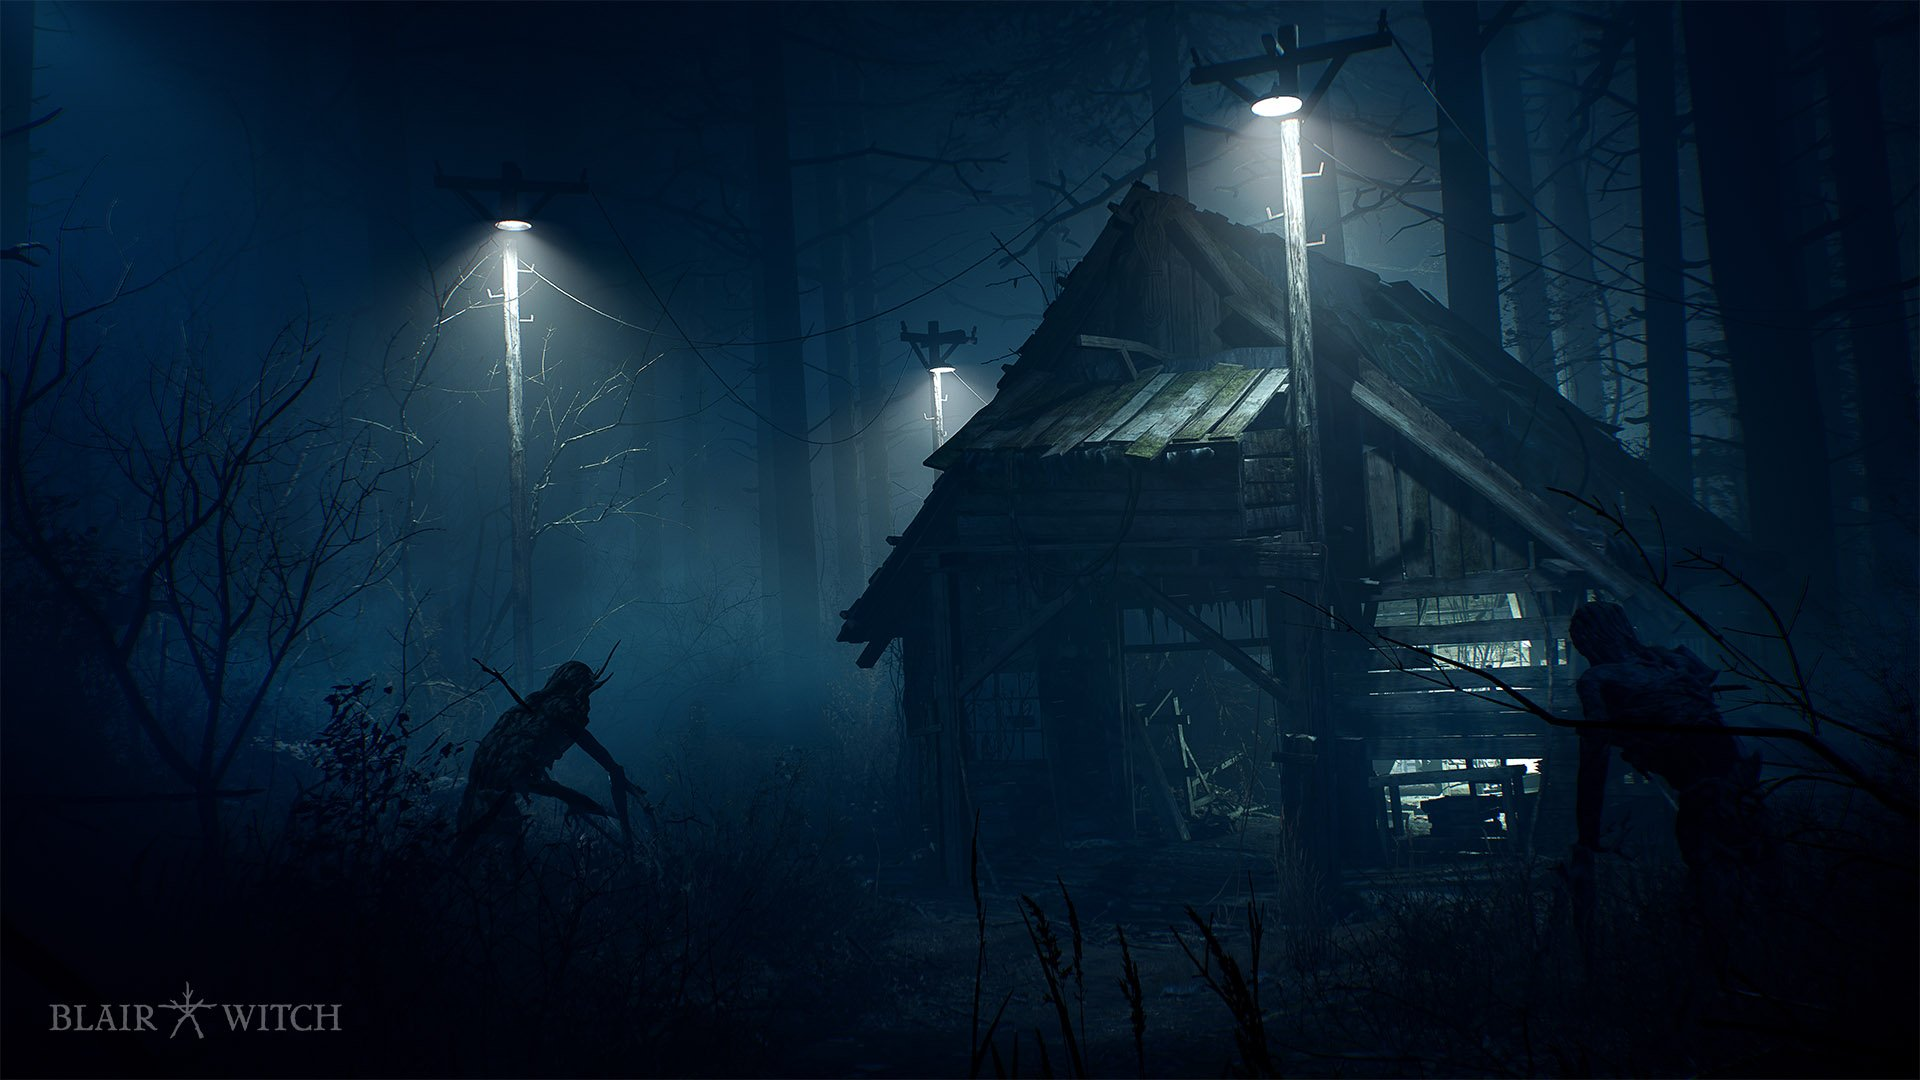 August 2019 video game release dates - Blair Witch Game